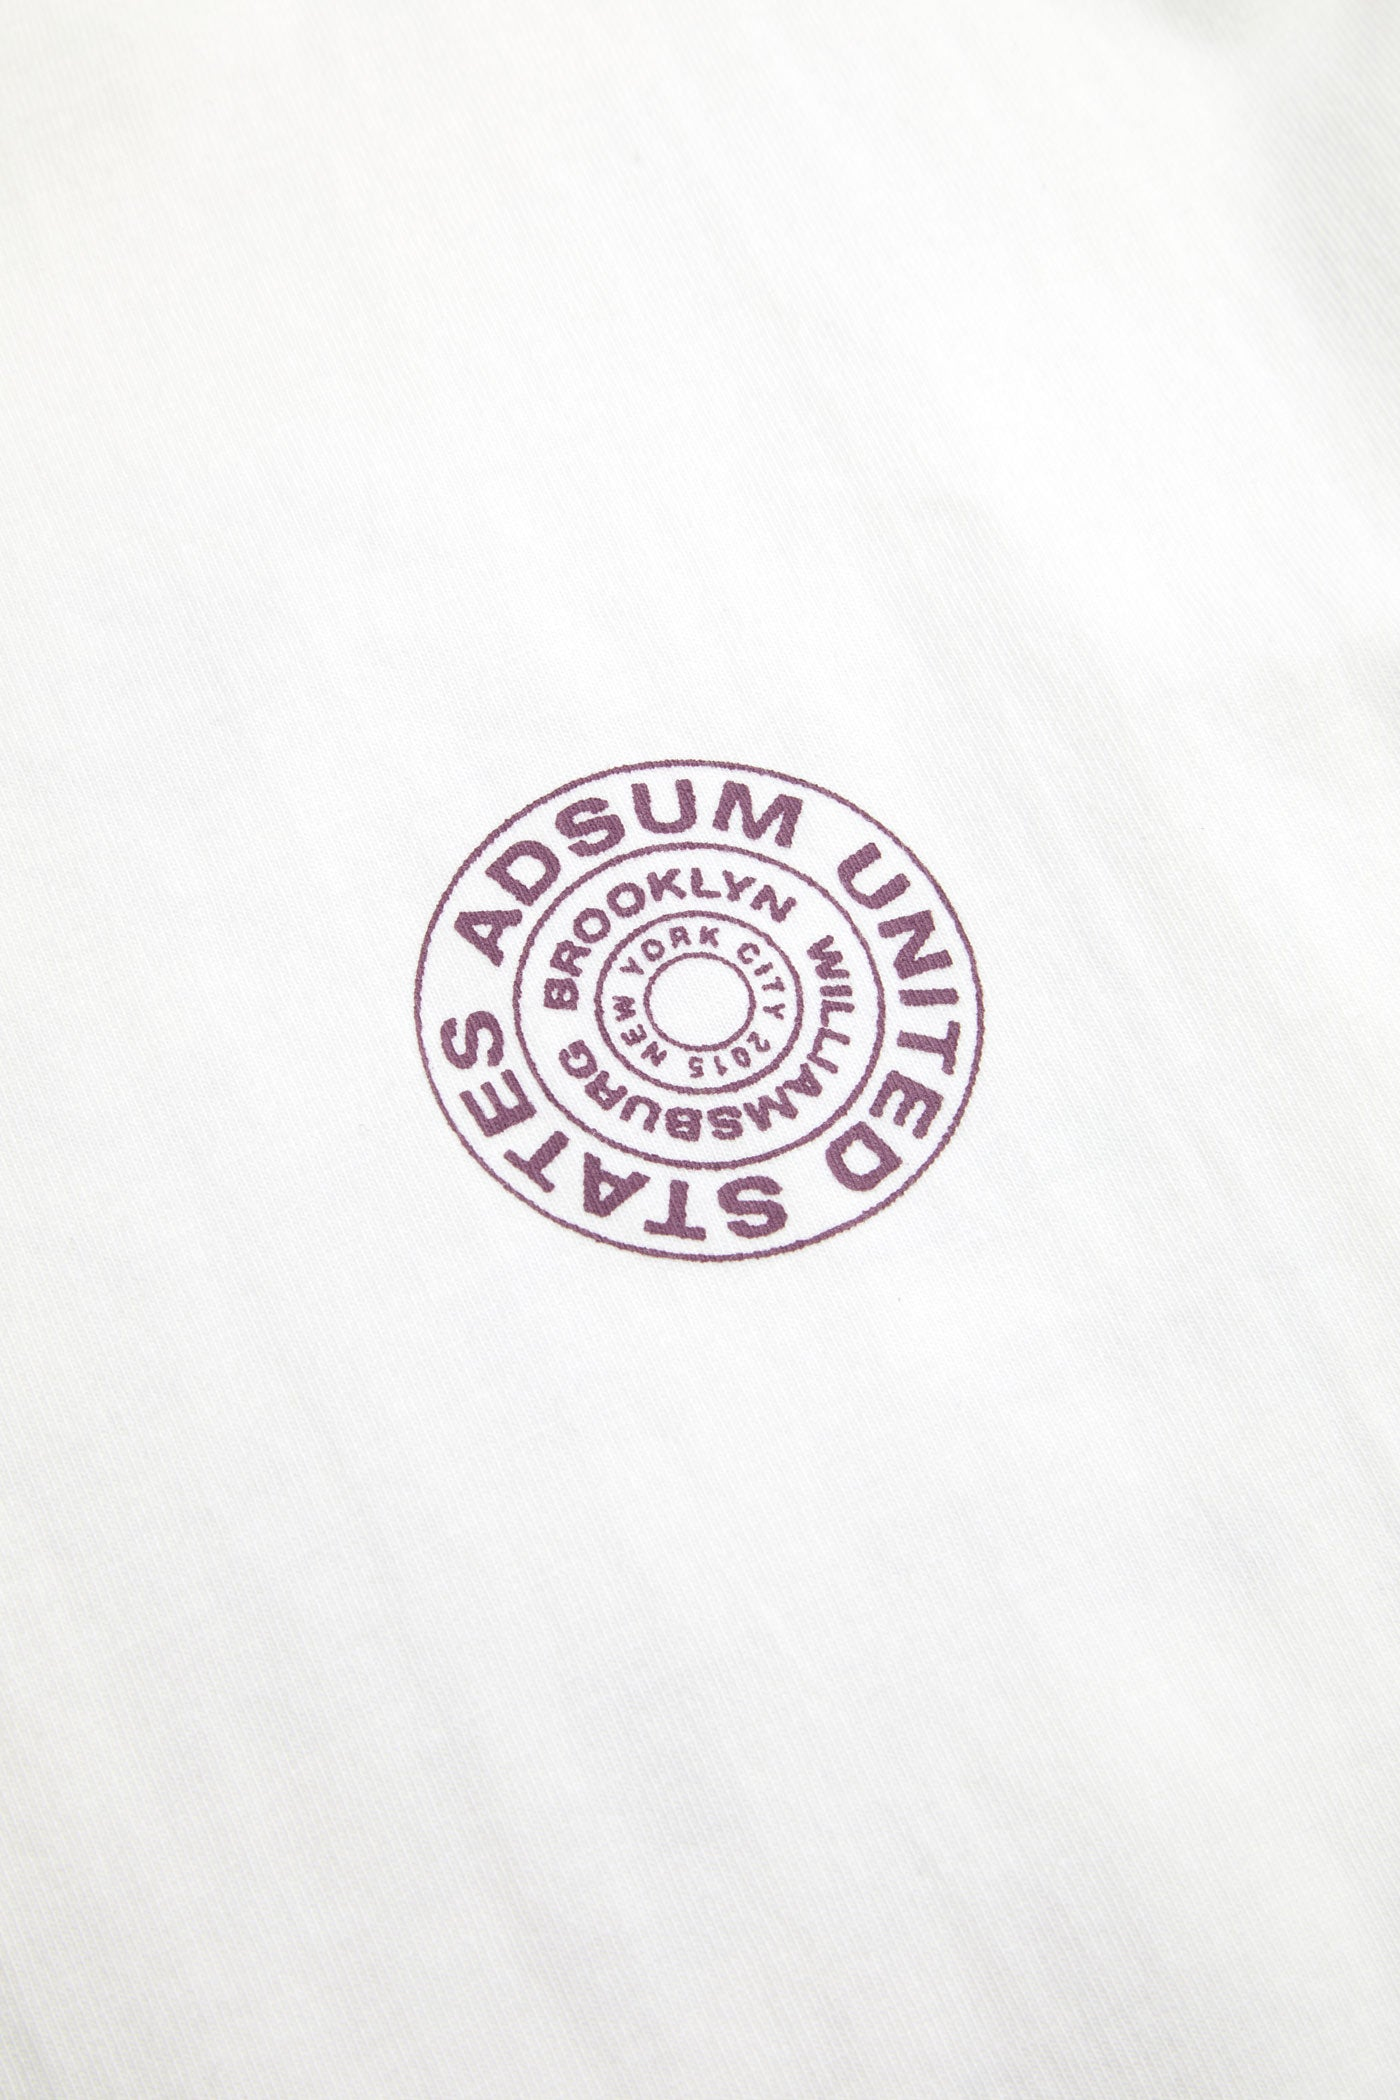 Adsum - Site Short Back Pocket